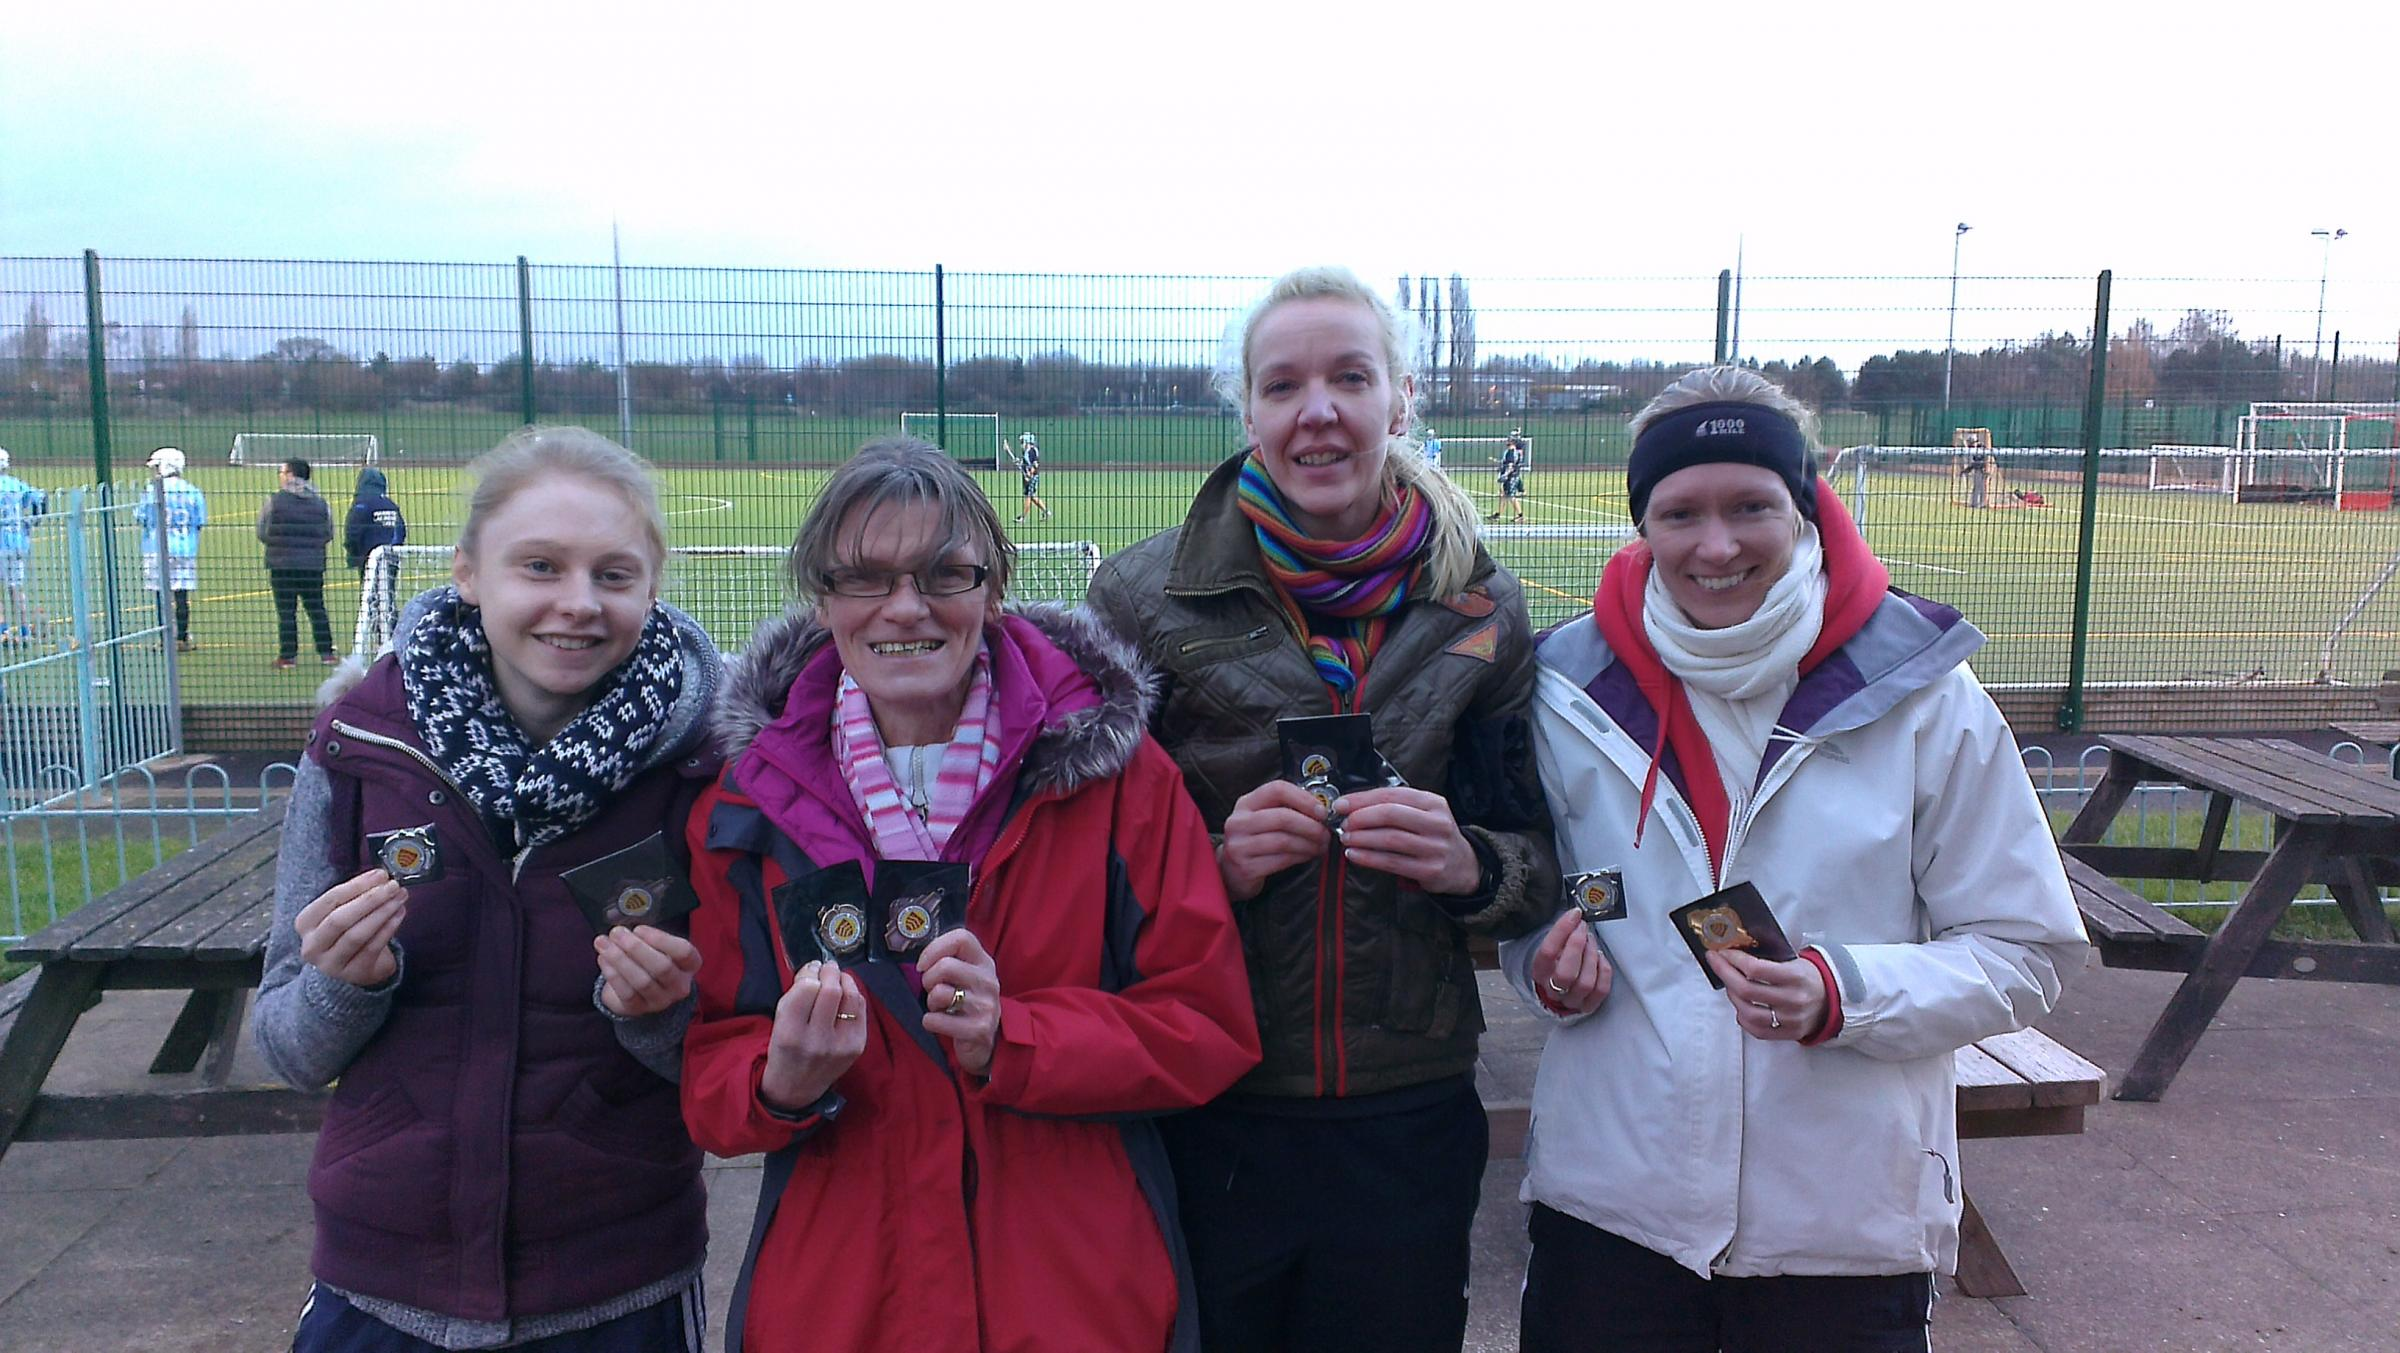 Bromsgrove and Redditch's Sally Hogan, Charlotte Ball, Melanie Hepke and Tamara Ball.